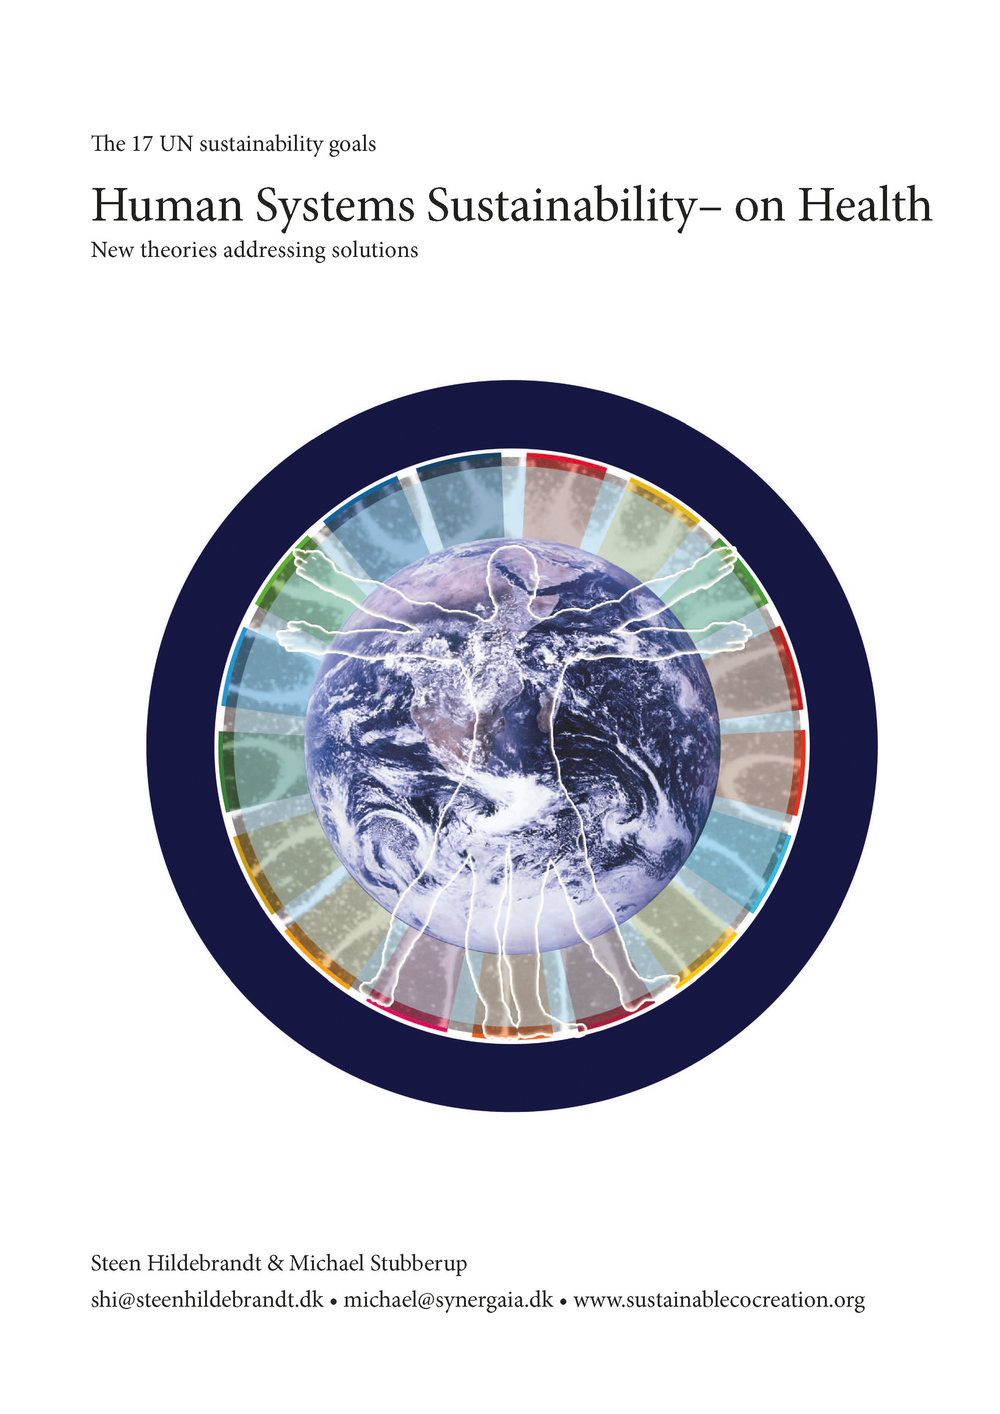 UN_Human_Systems_Systems_Sustainability_on_Health_Hildebrandt_Stubberup